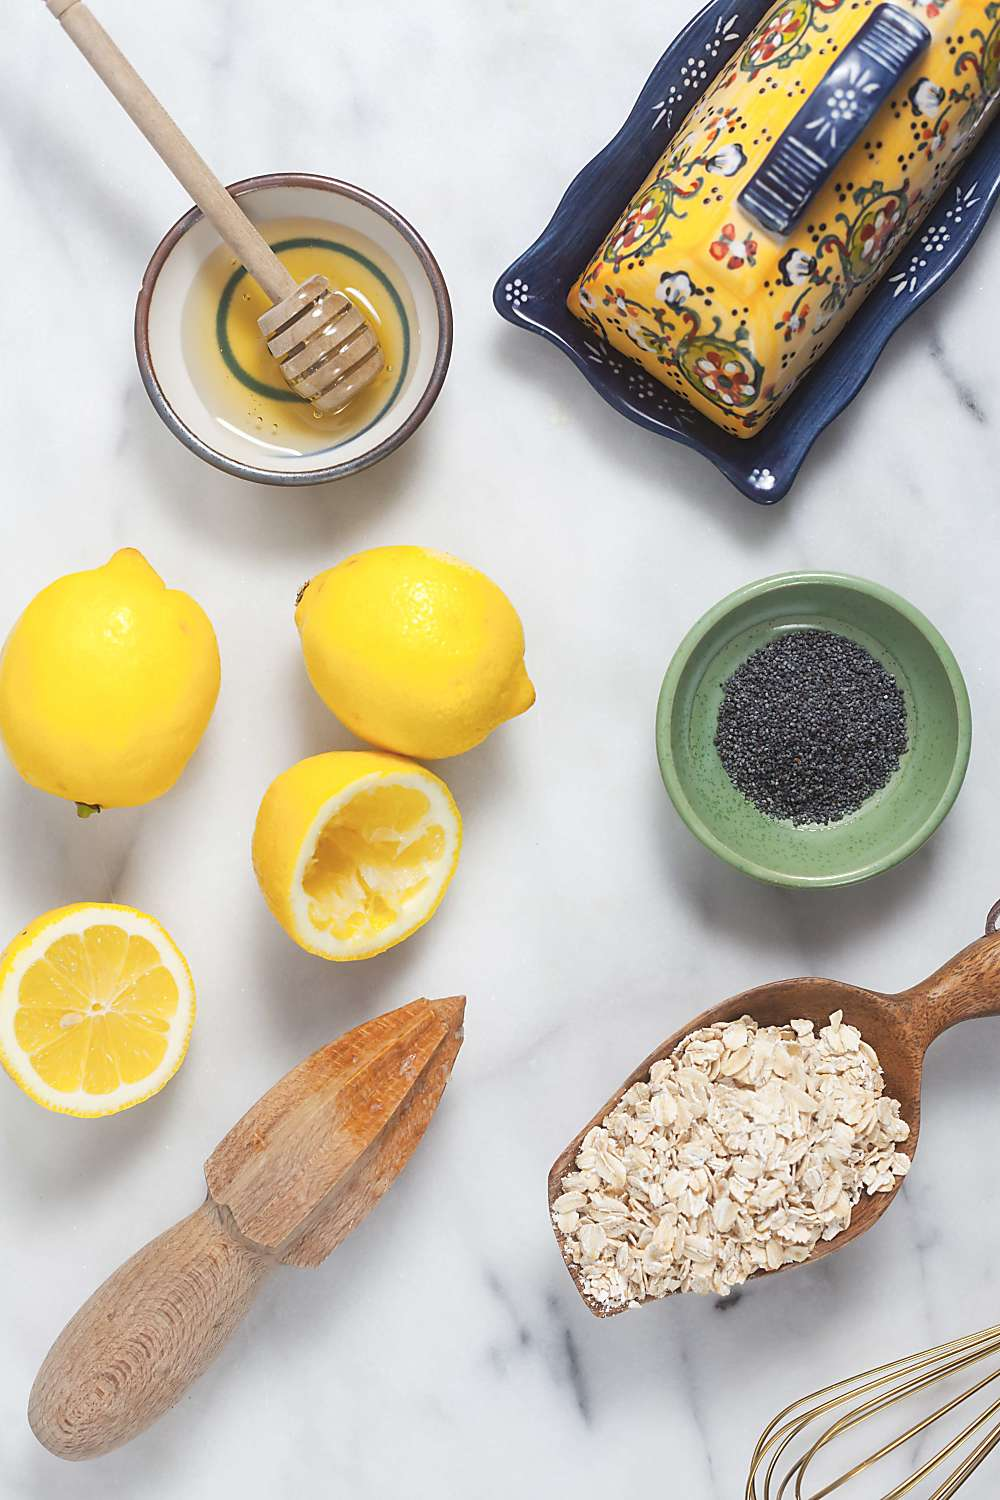 Lemon Poppyseed Oatmeal Pancakes Ingredients